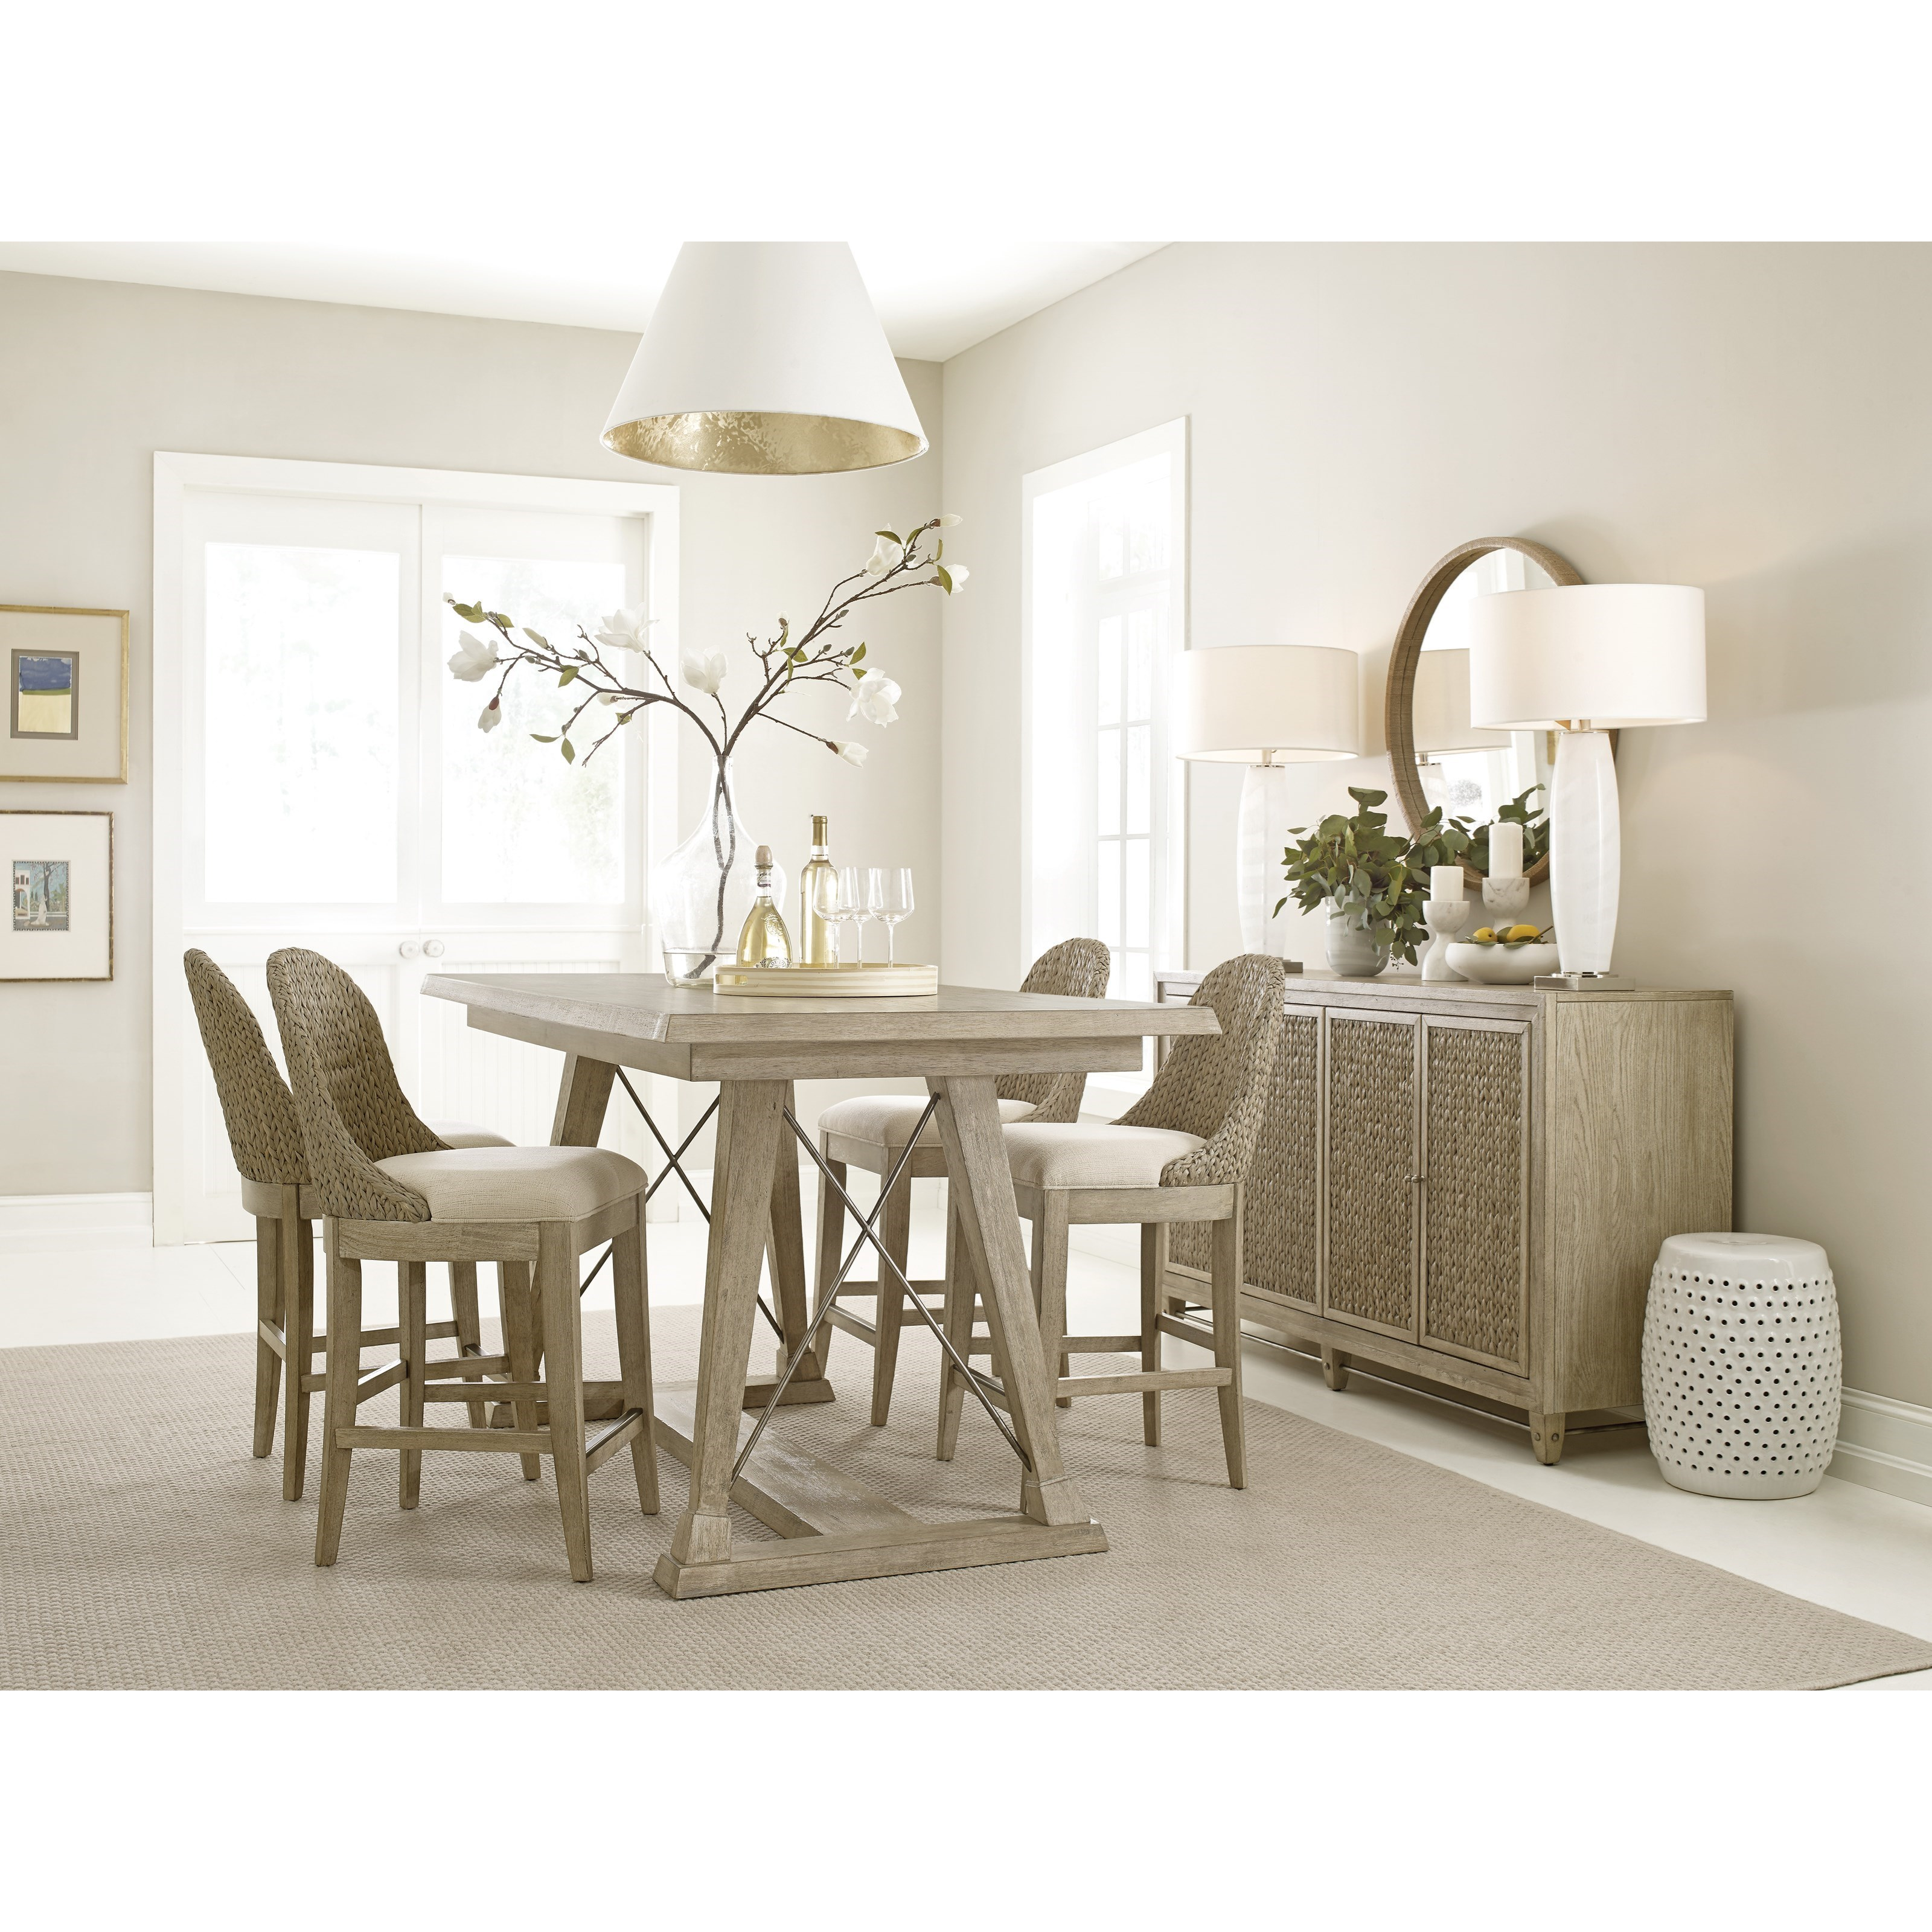 American Drew Vista 803 Dining Room Group 1 Casual Dining Room Group Esprit Decor Home Furnishings Casual Dining Room Groups